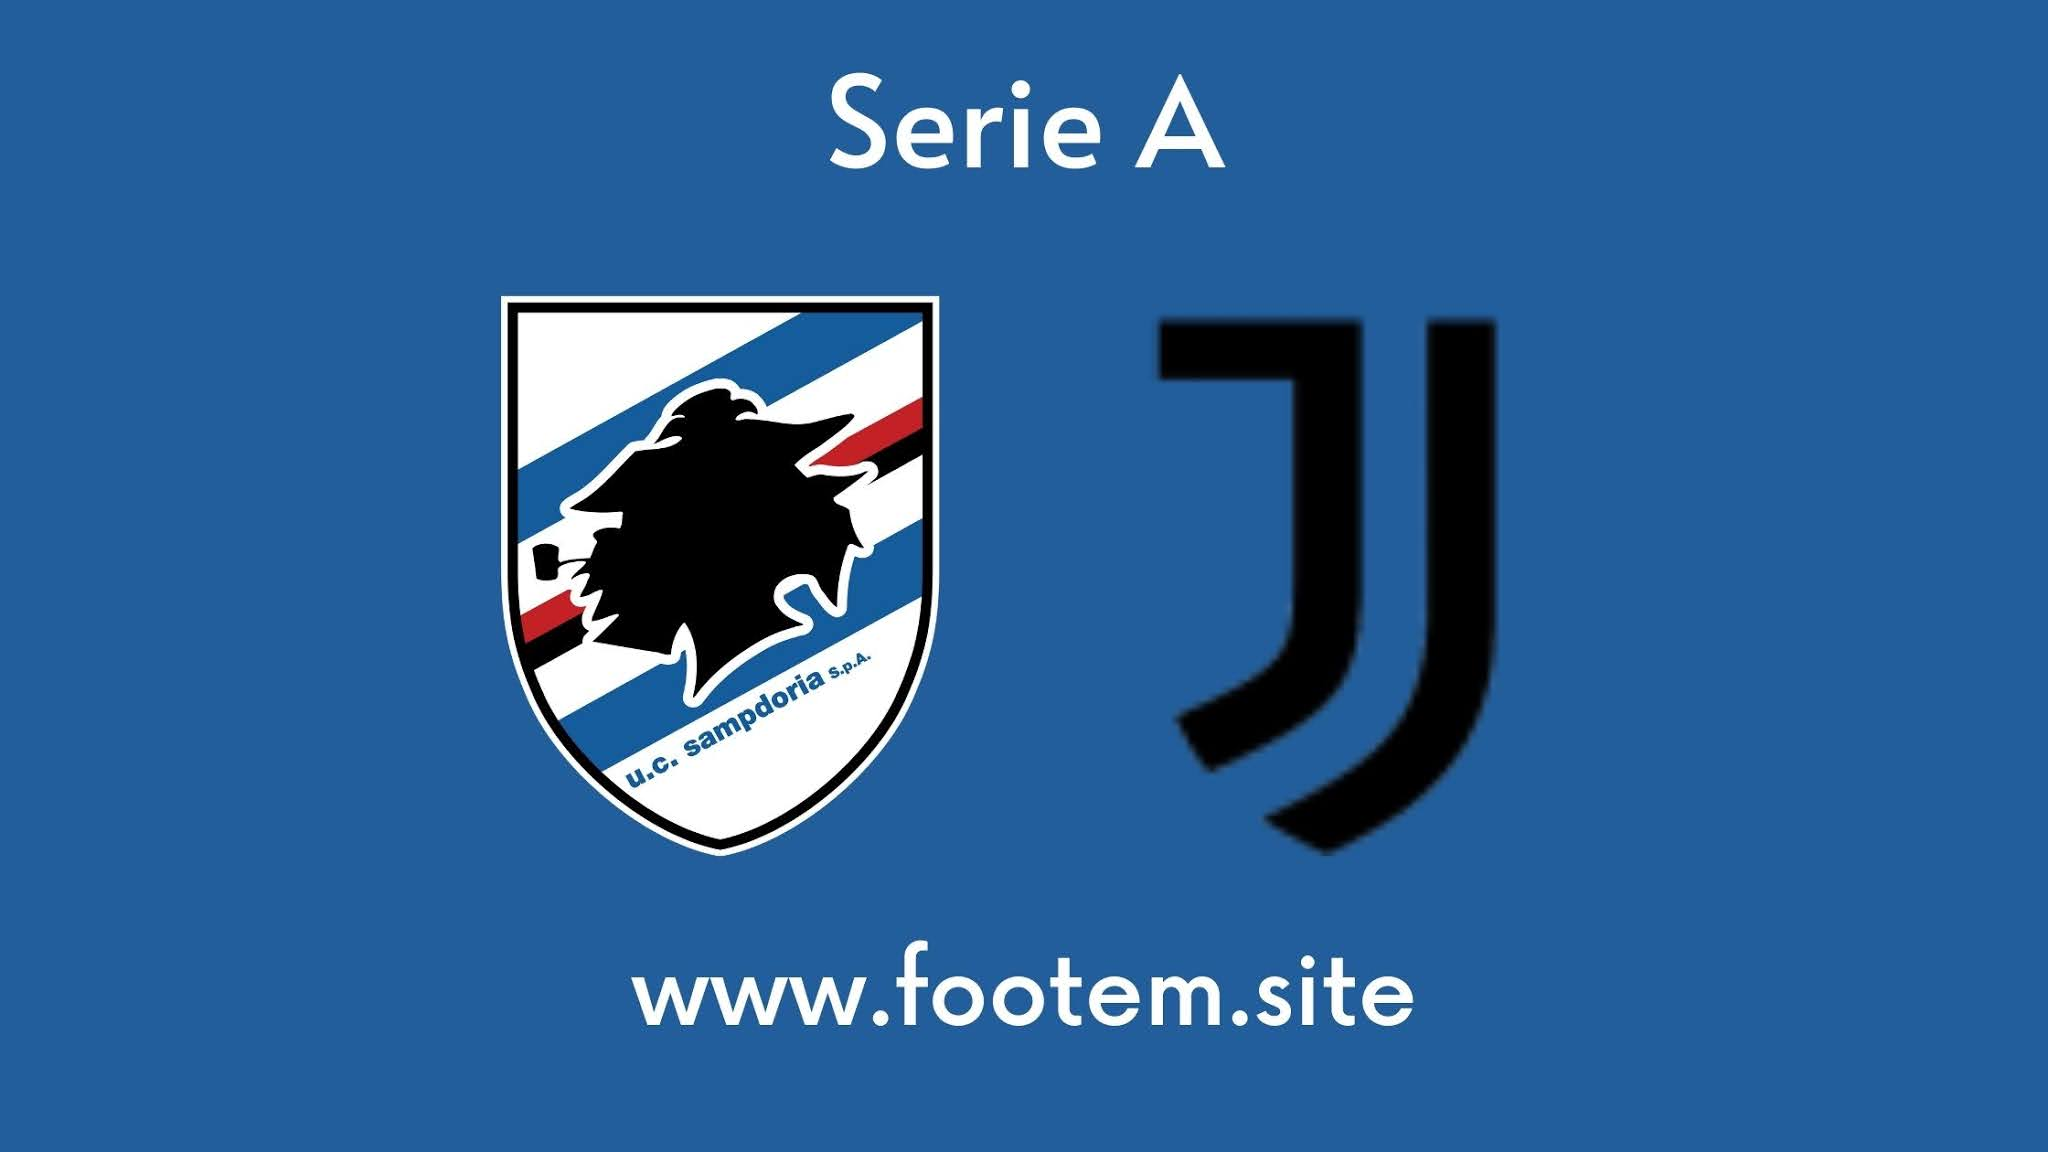 Sampdoria vs Juventus FOOTEM7 FOOTEM.SITE